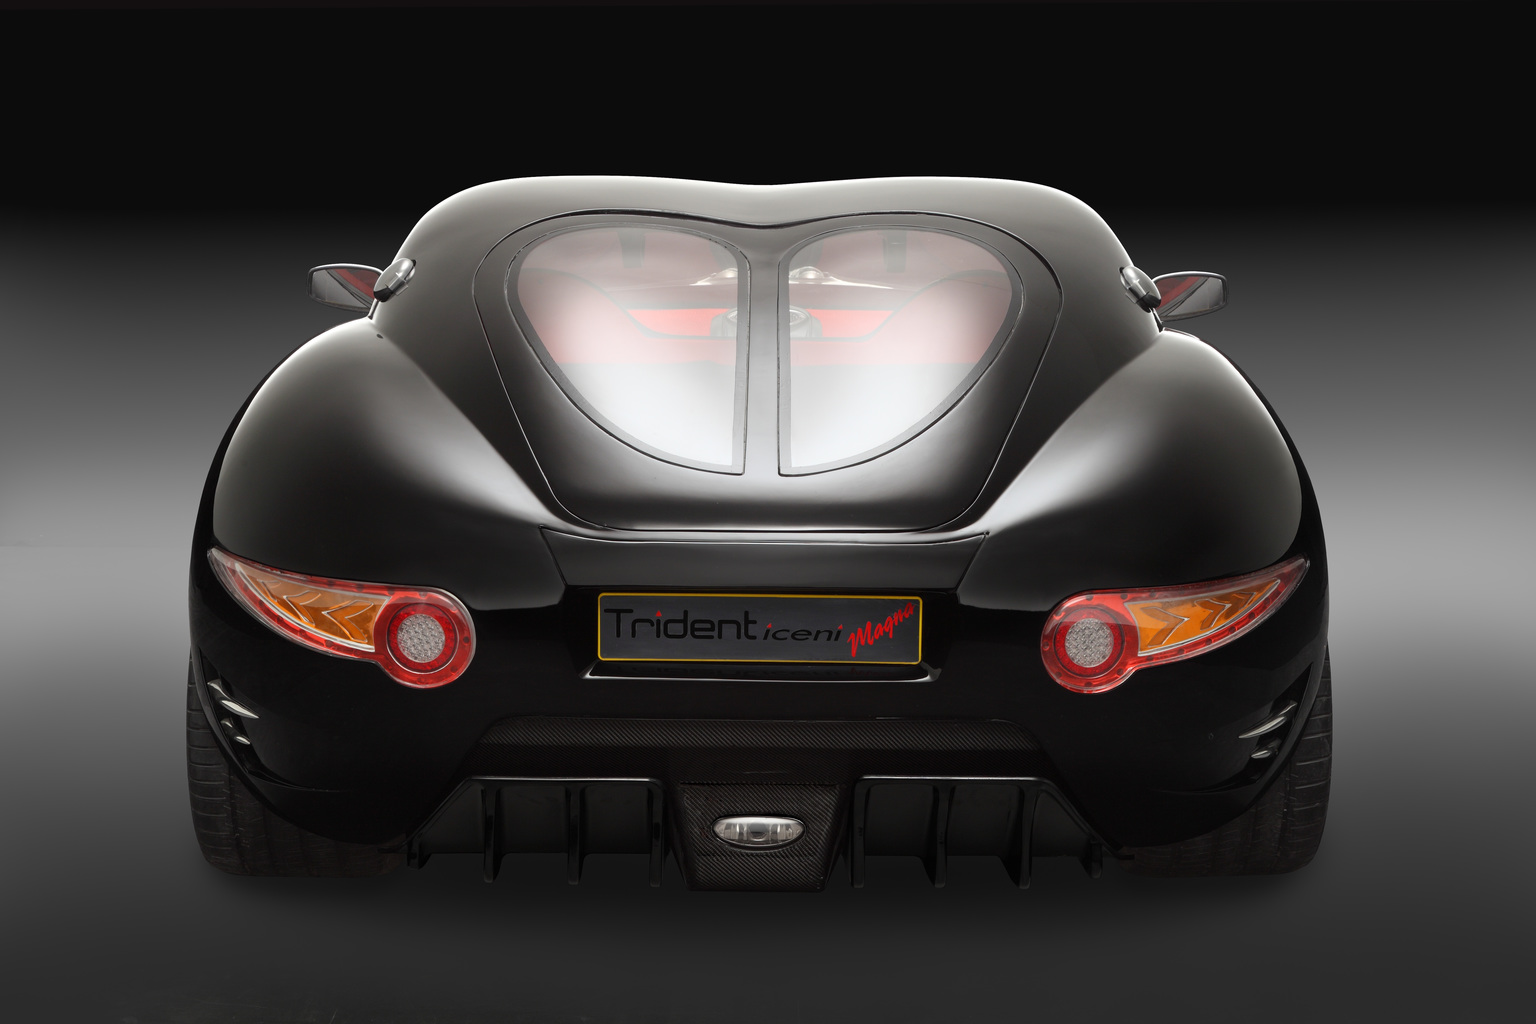 Trident Iceni Magna rear view